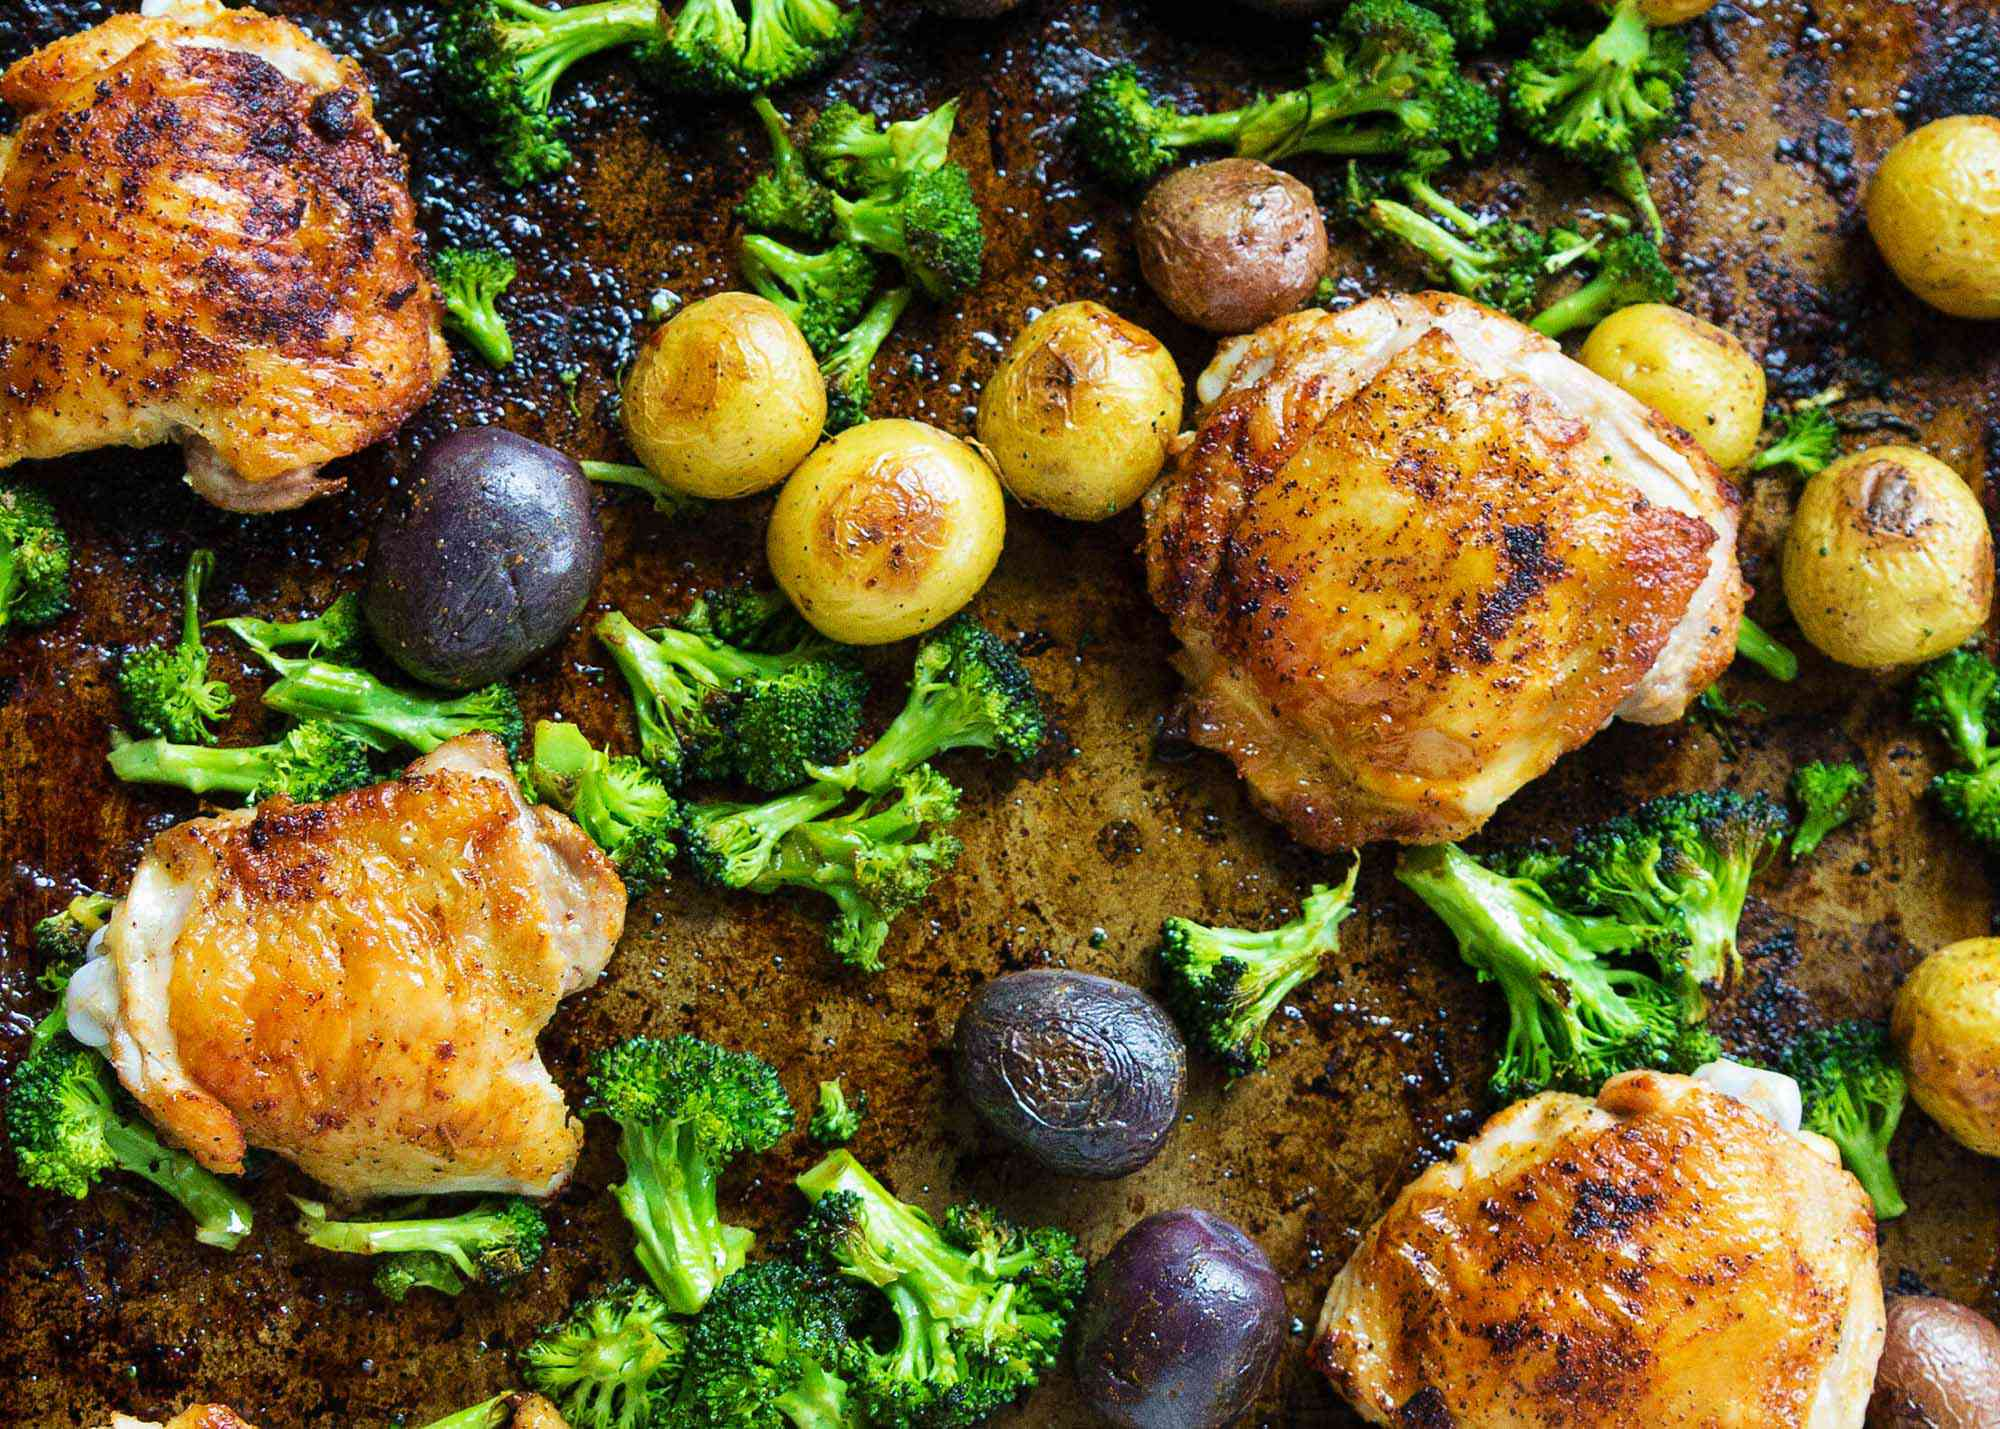 Sheet Pan Chicken with Broccoli and Potatoes